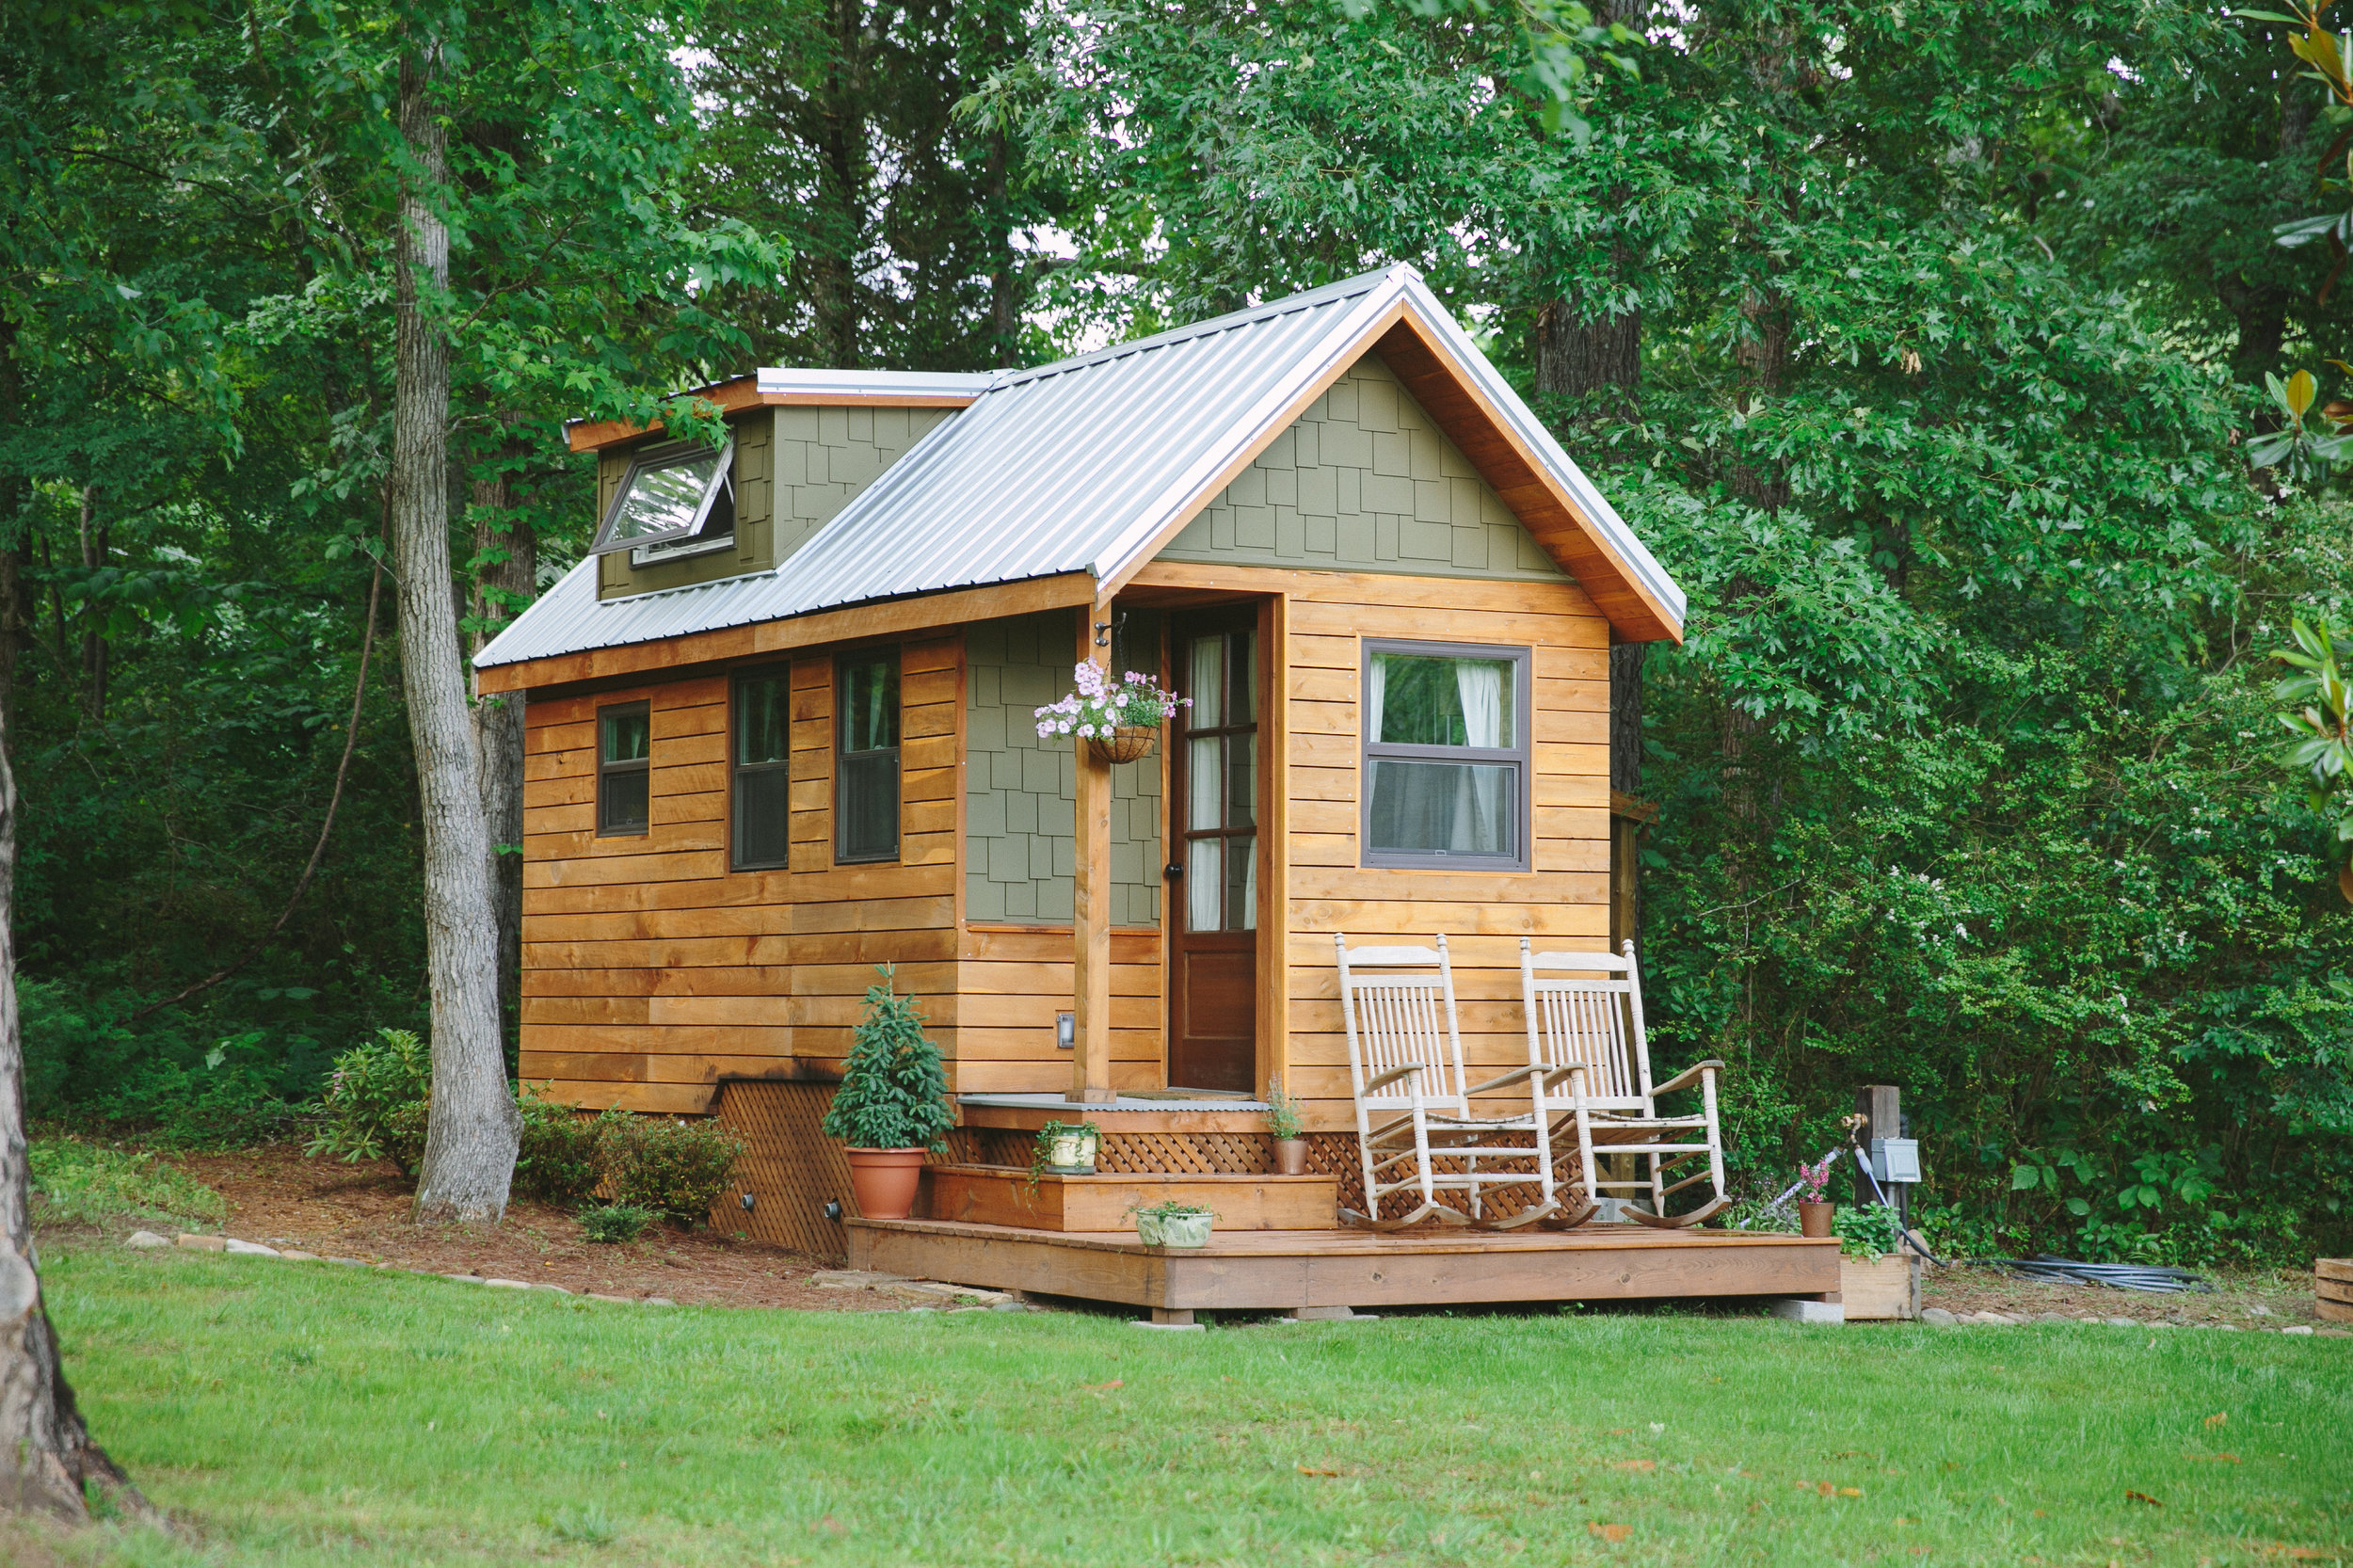 tiny house customs. Tiny House Customs